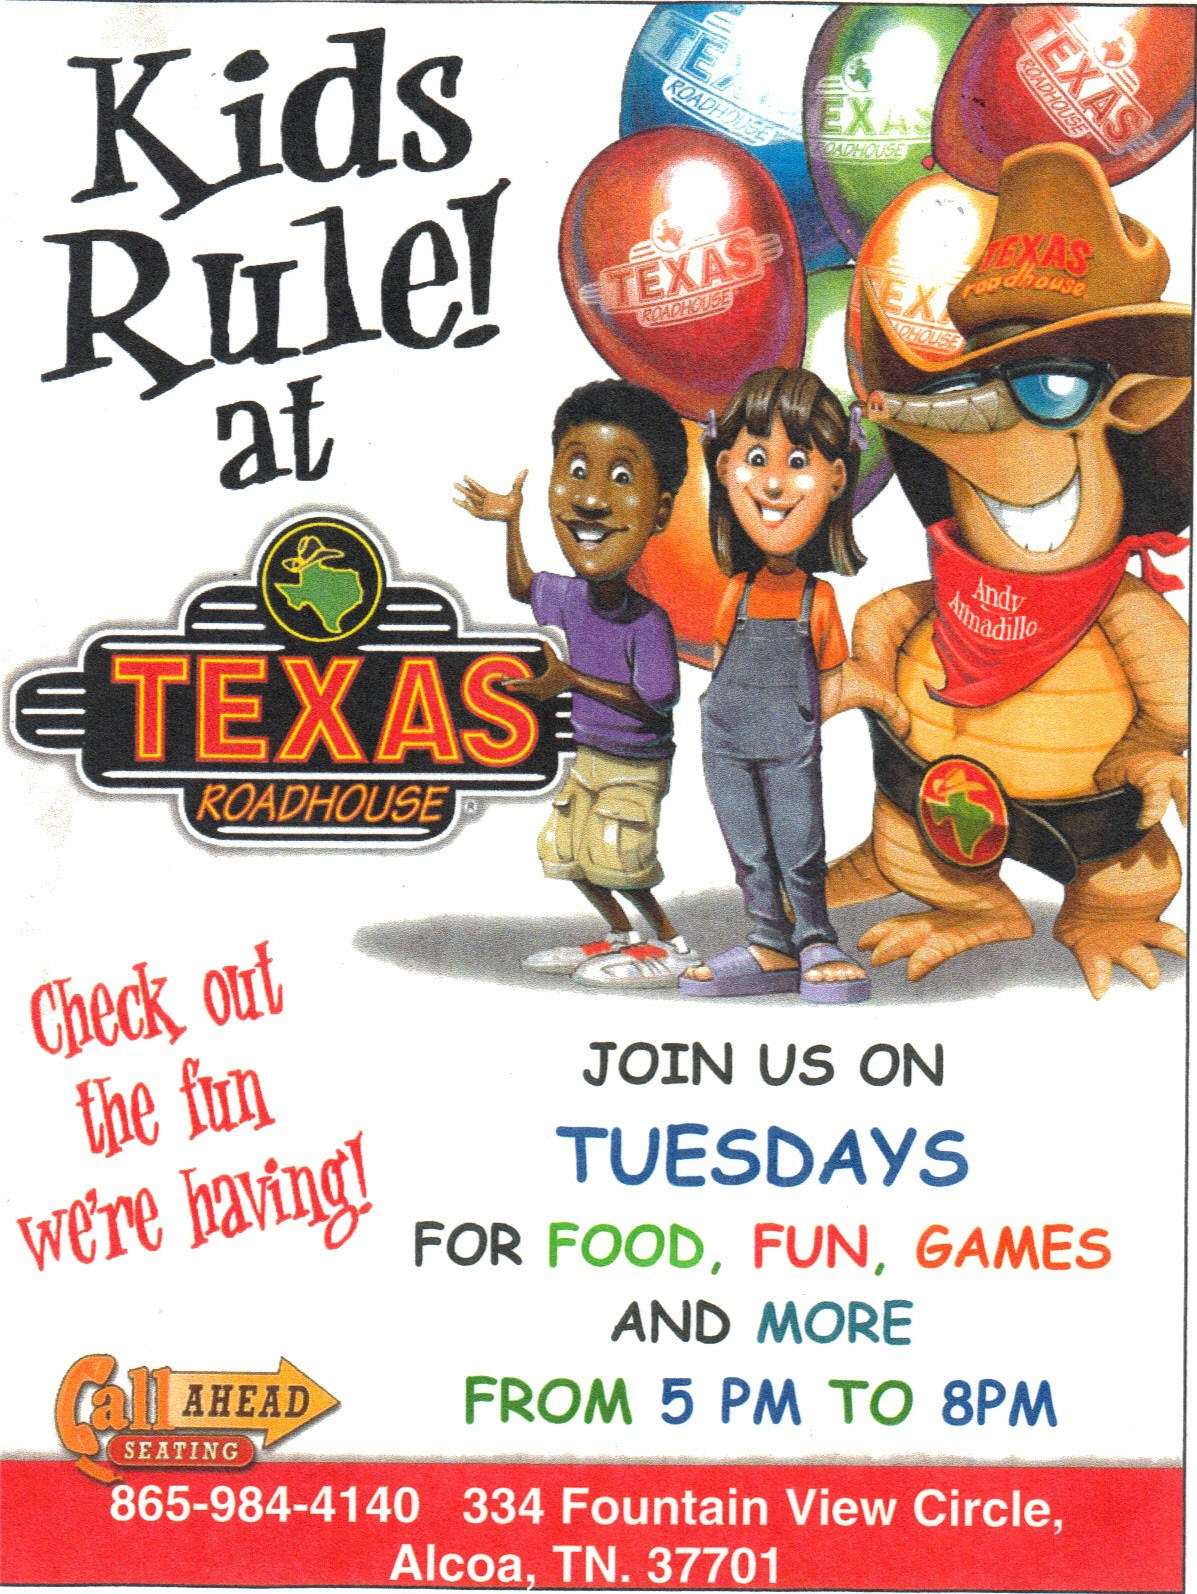 Tuesdays Are Kids' Nights At Alcoa Texas Roadhouse Thrifty Christy - Texas Roadhouse Free Appetizer Printable Coupon 2015